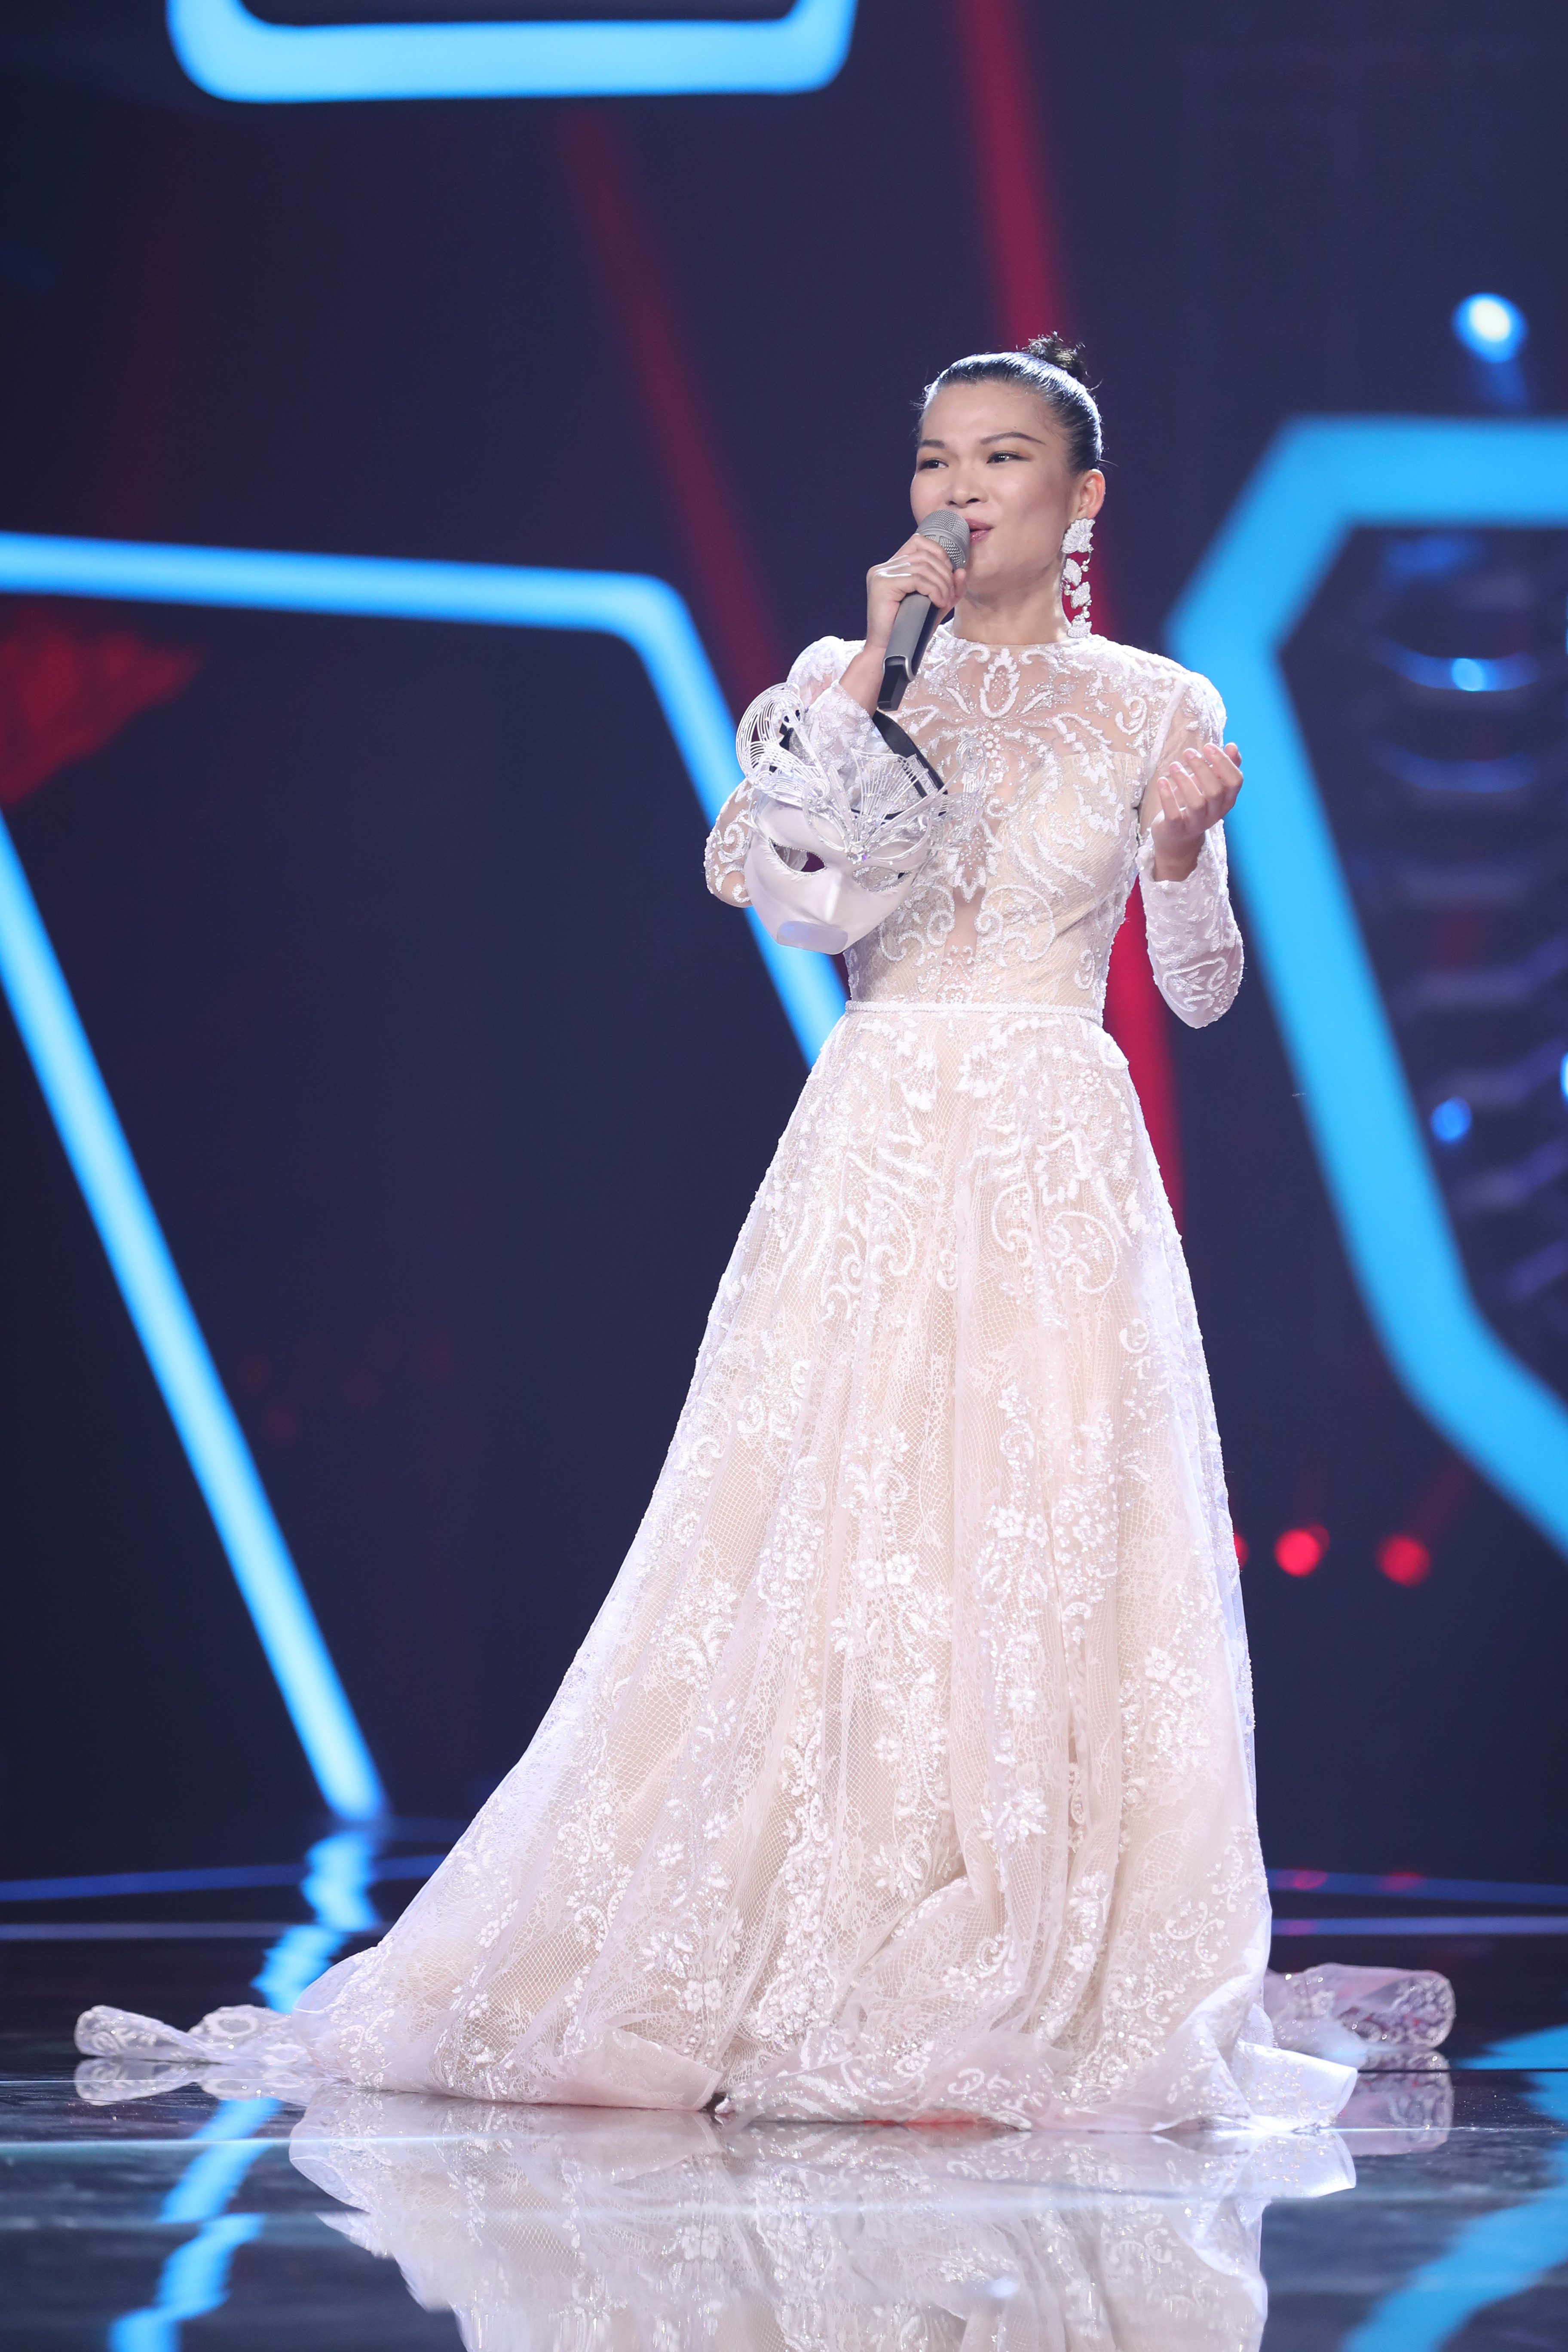 Sung by su yunying, who attended the masked singing will guess the daring supermodel